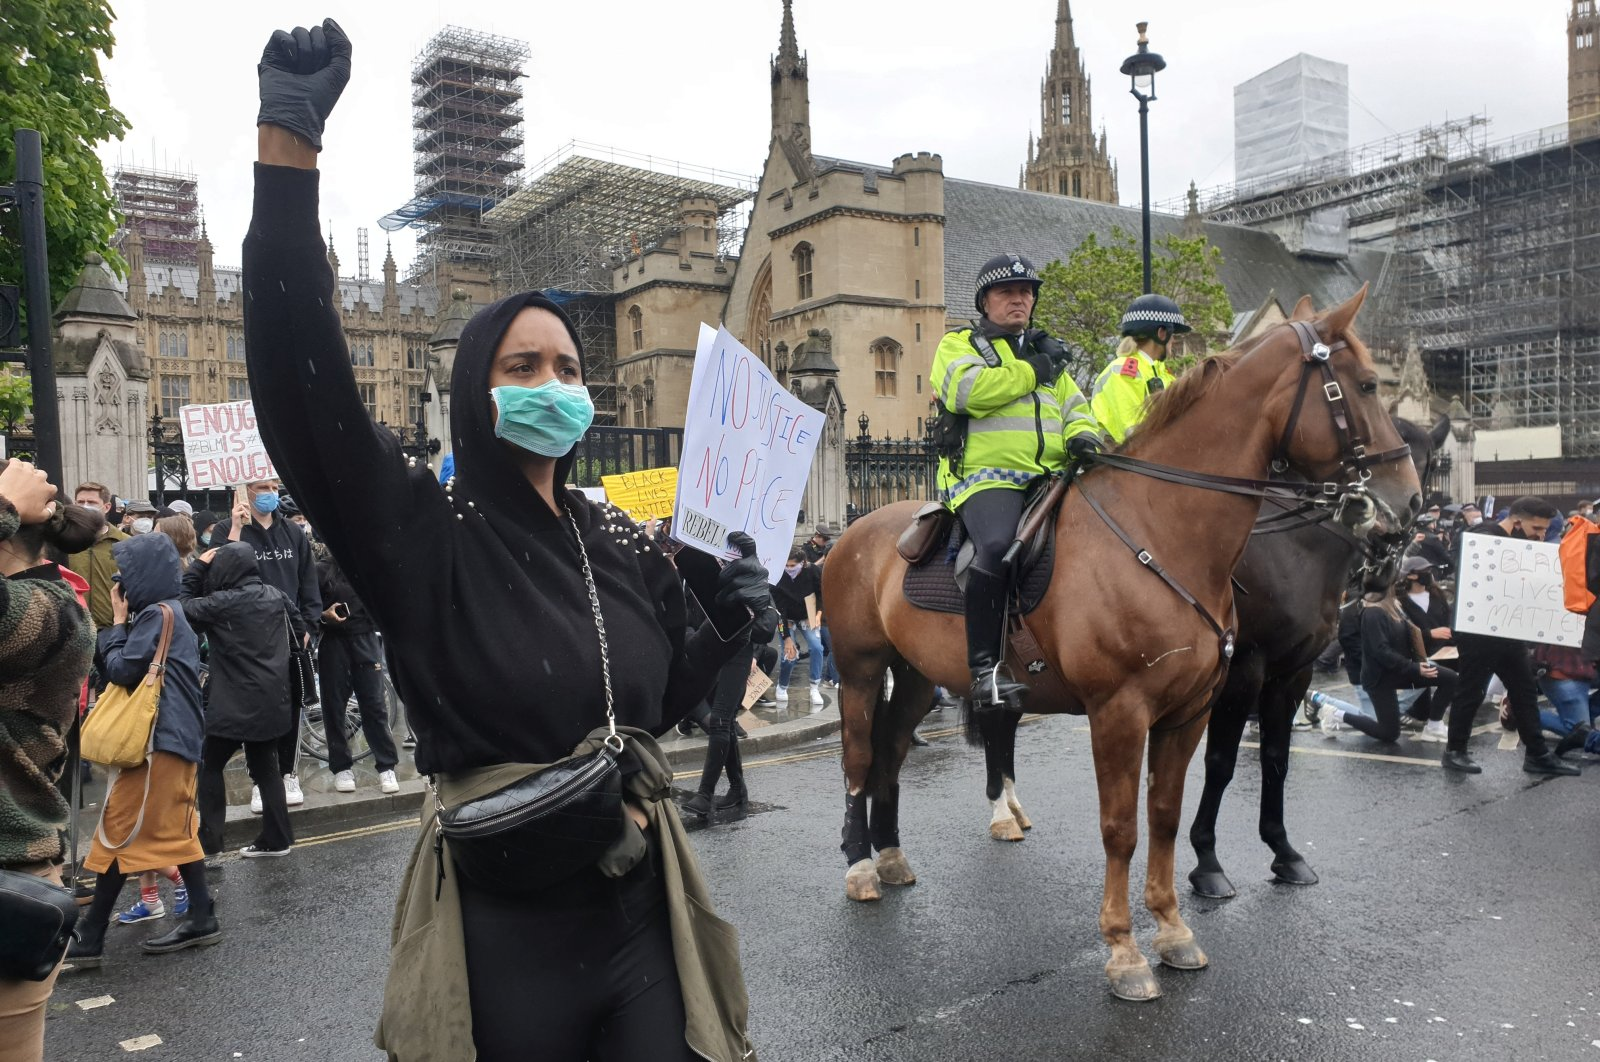 Mounted police watch demonstrators during a Black Lives Matter protest in Parliament Square, following the death of George Floyd who died in police custody in Minneapolis, in London, Britain, June 6, 2020. (Reuters Photo)